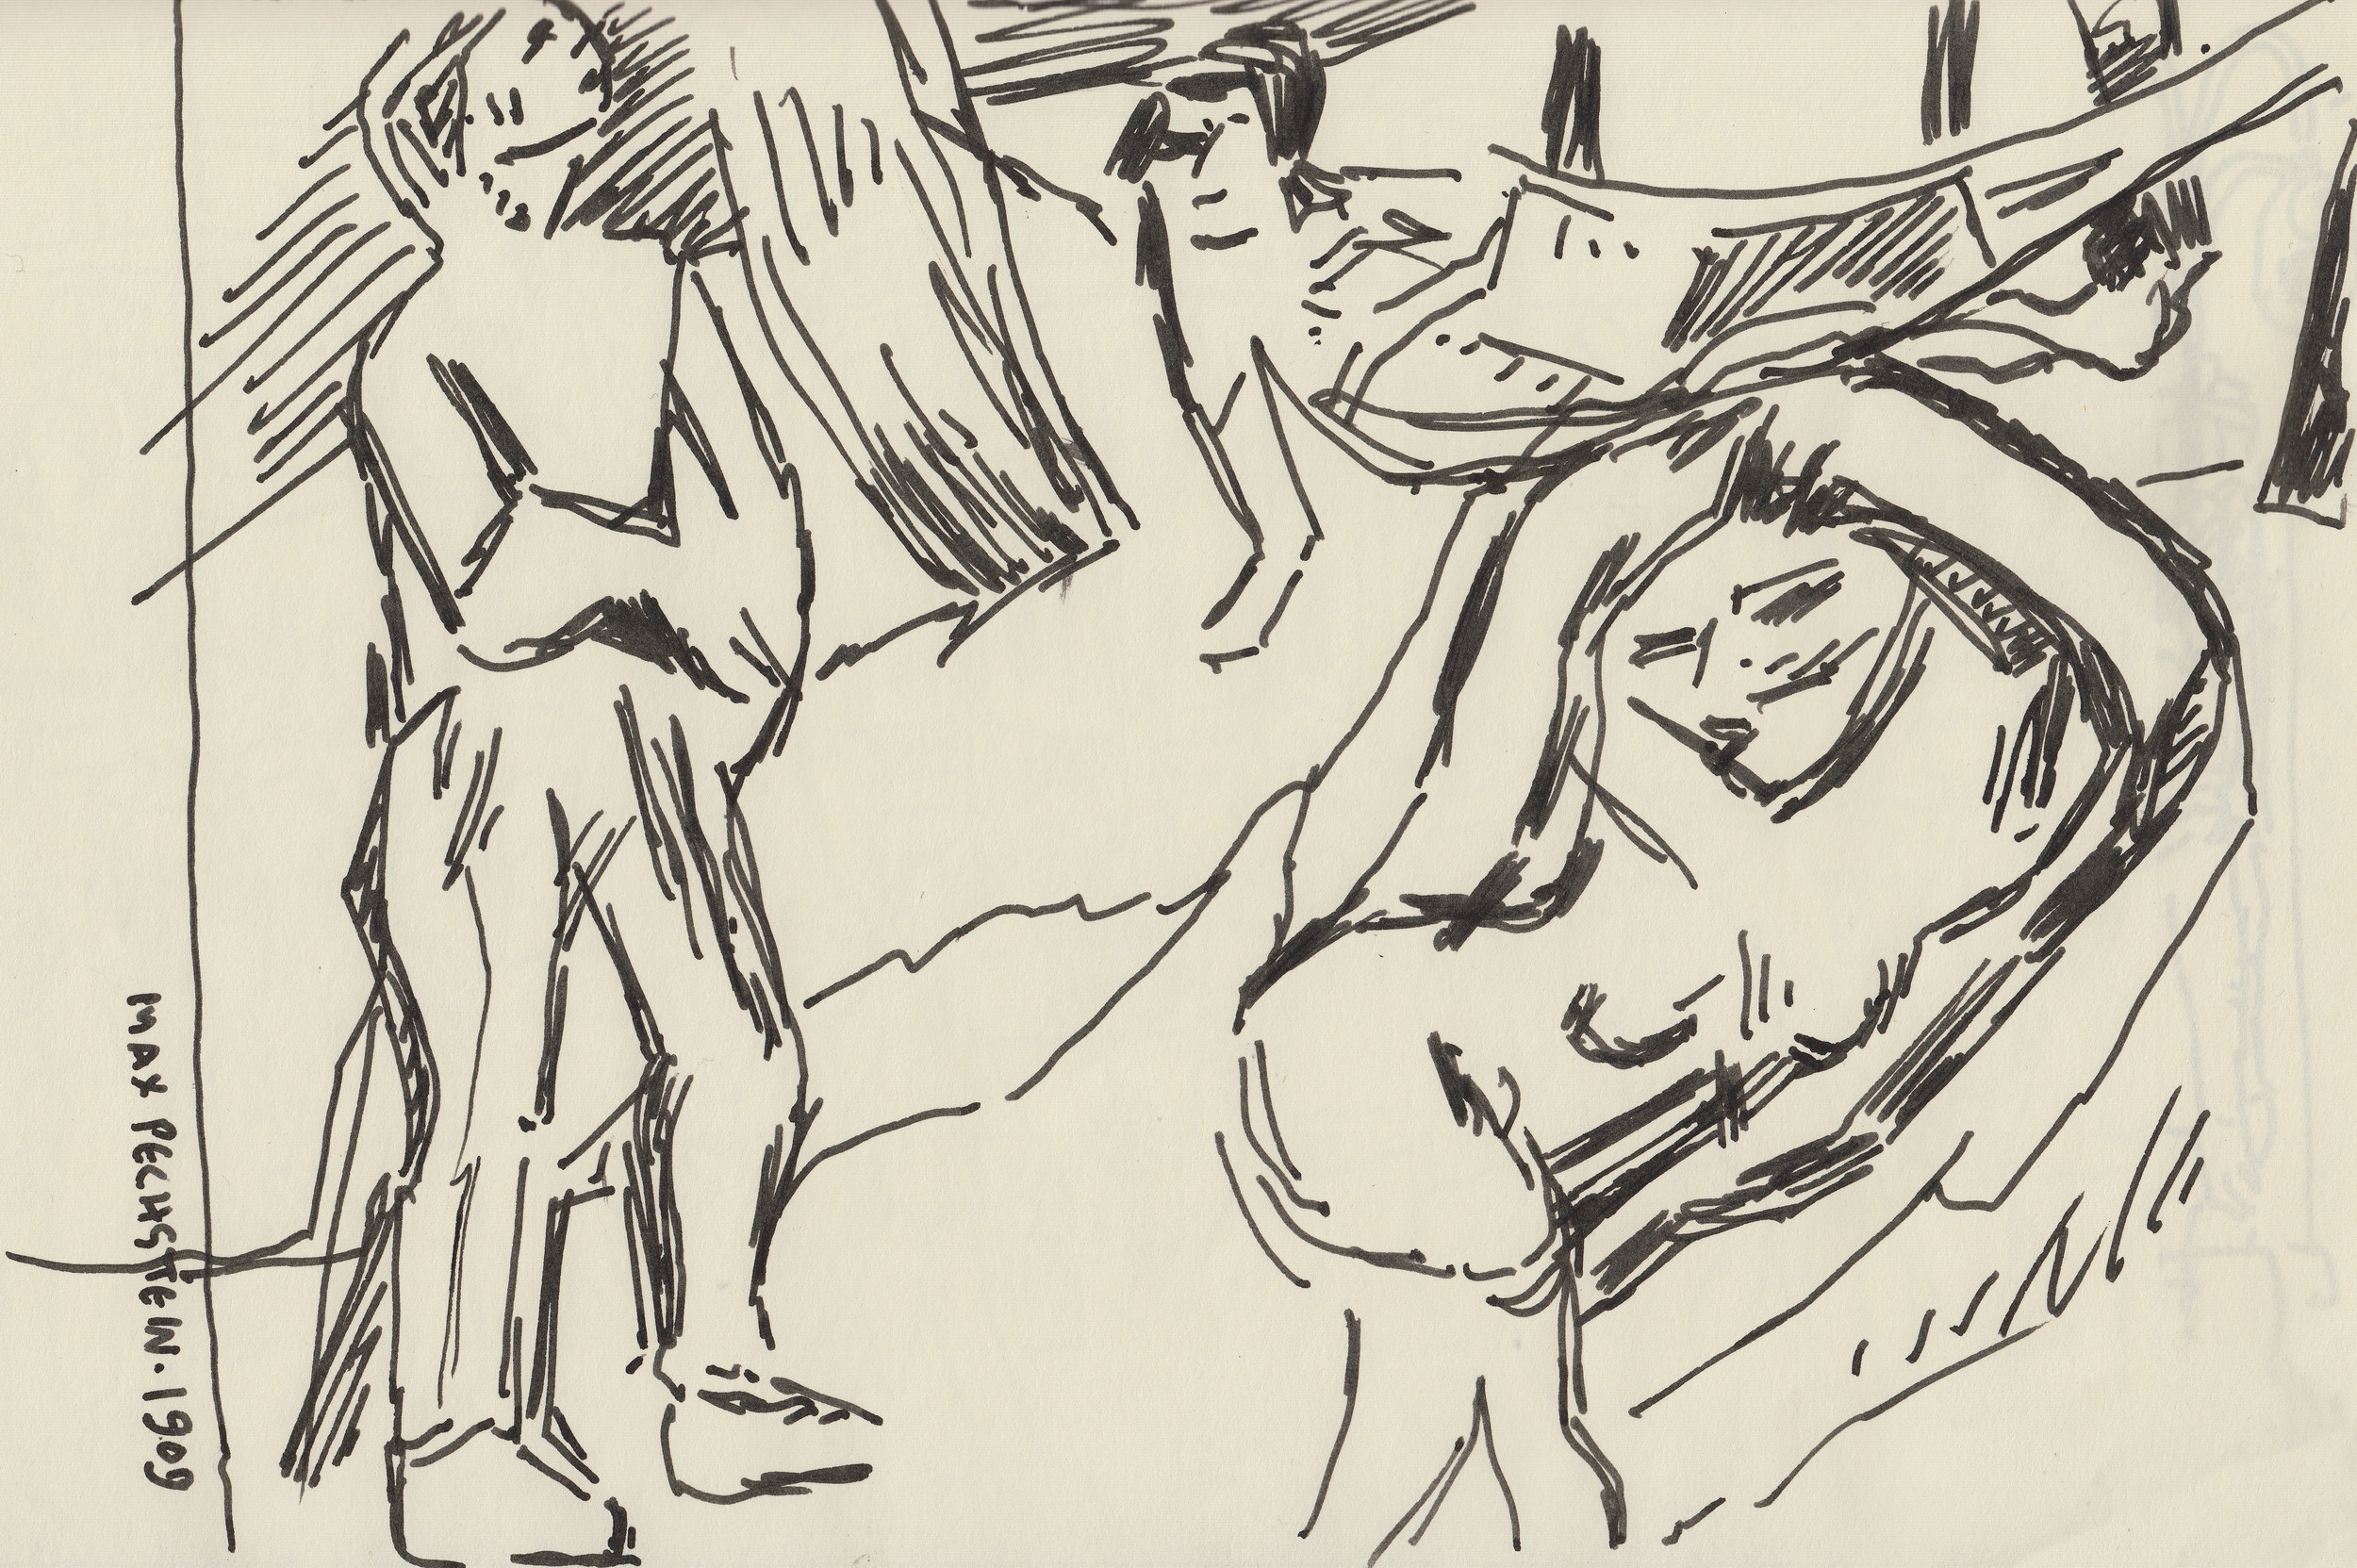 Drawing of Max Pechstein Painting from 1909